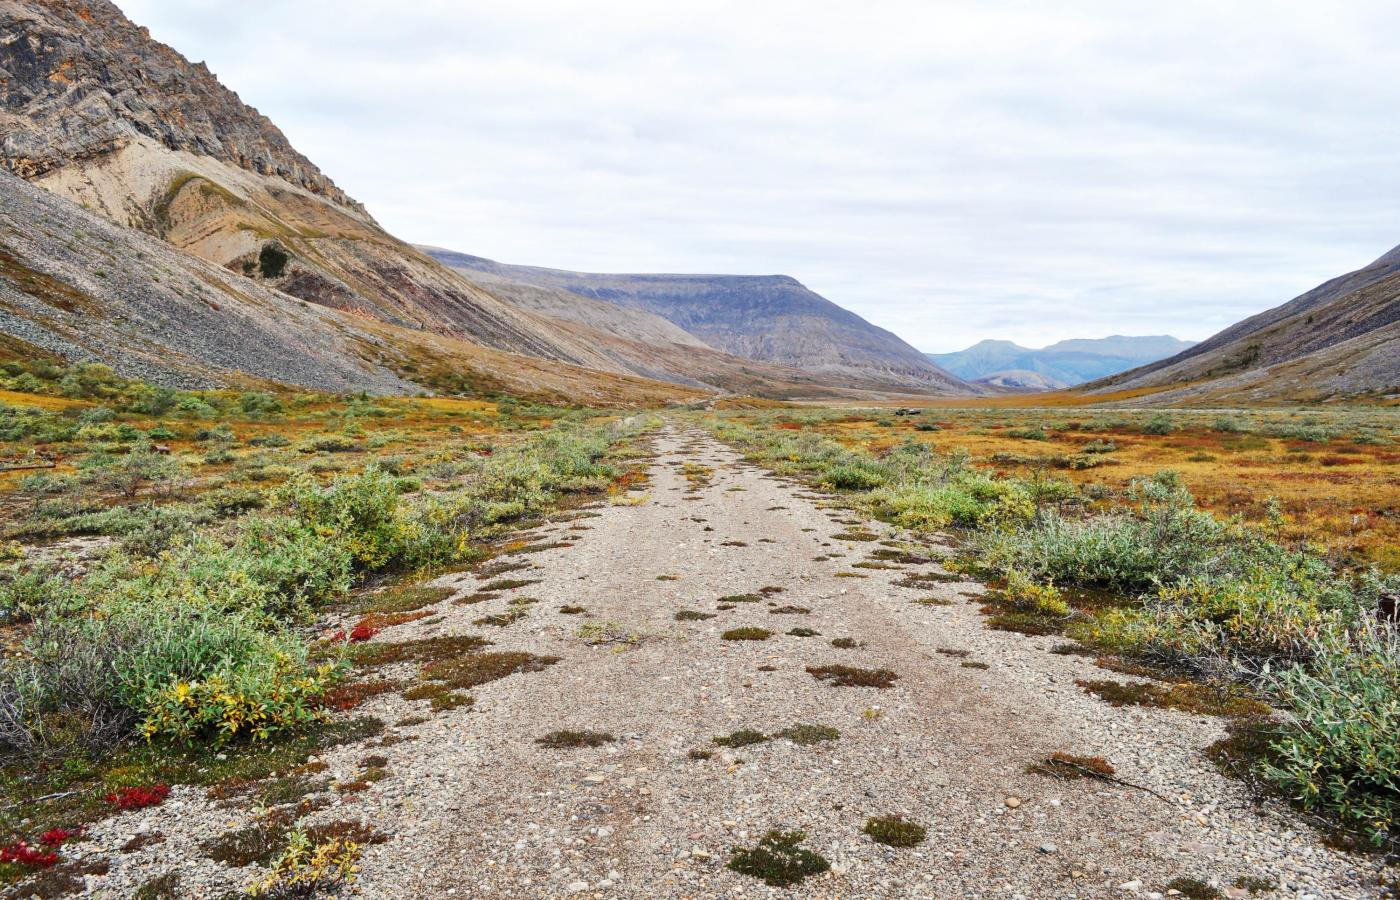 The Canol Heritage Trail in Canada's Northwest Territories is a mountain bike back through time and through some of the most dramatic landscapes in the country